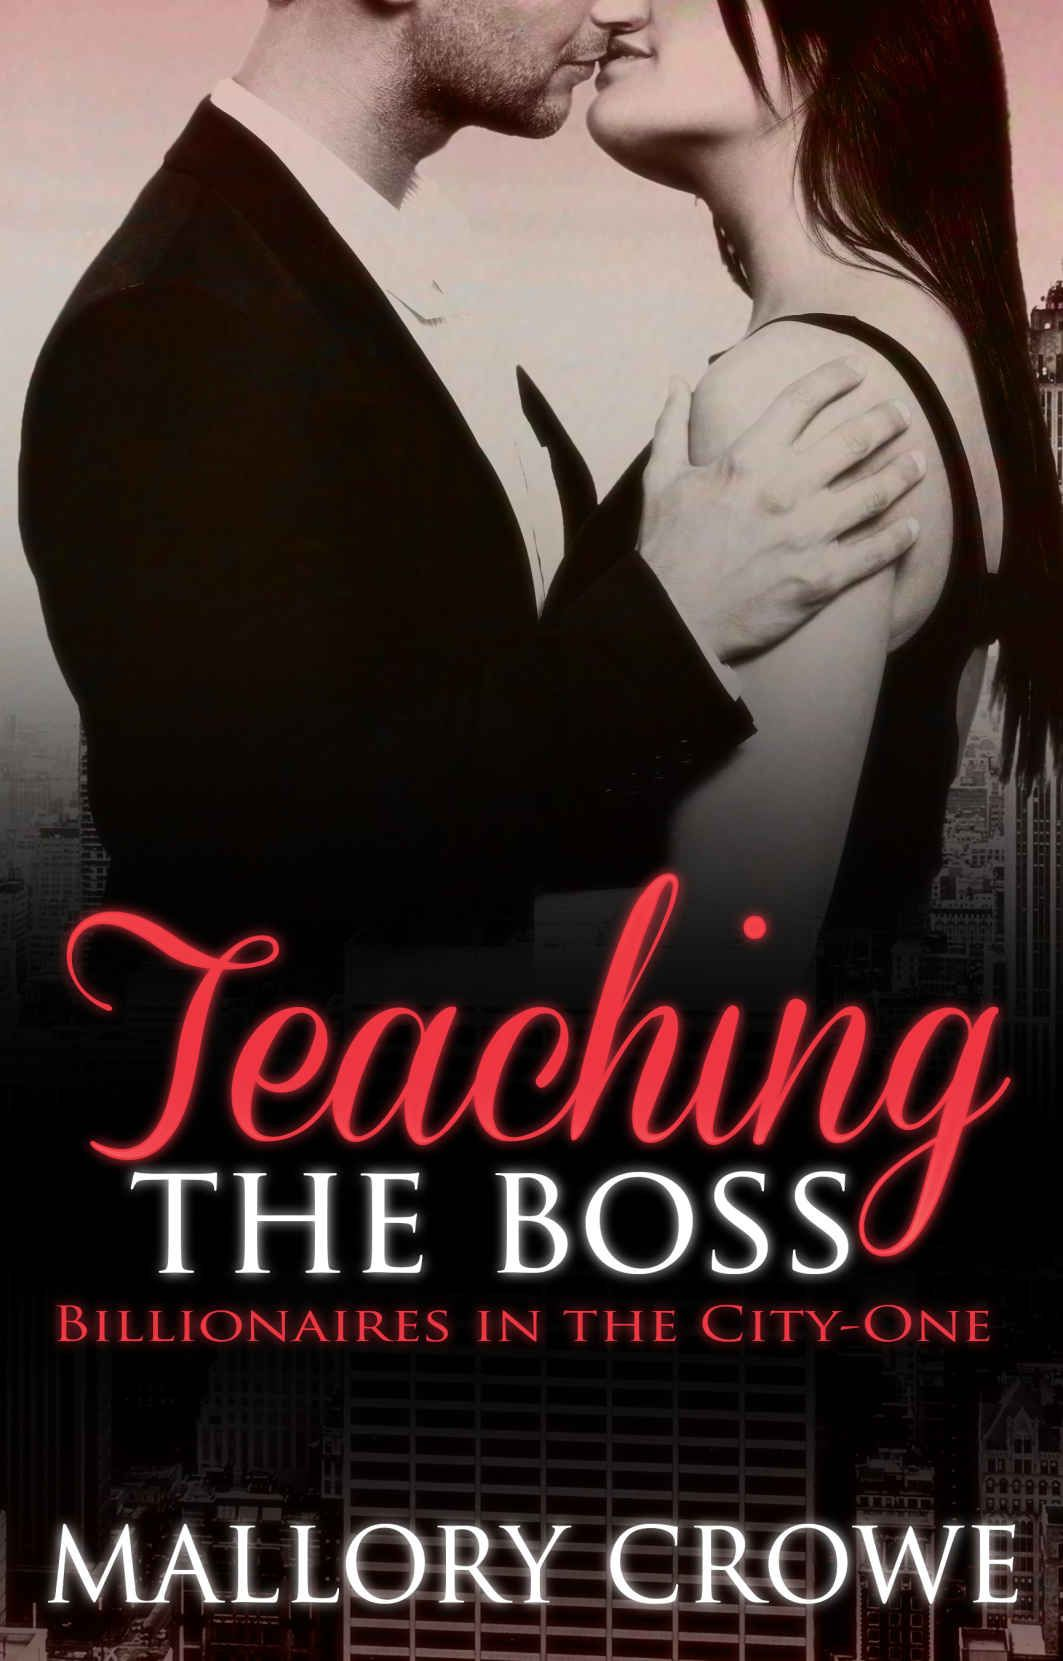 Teaching The Boss (Billionaires in the City Book 1